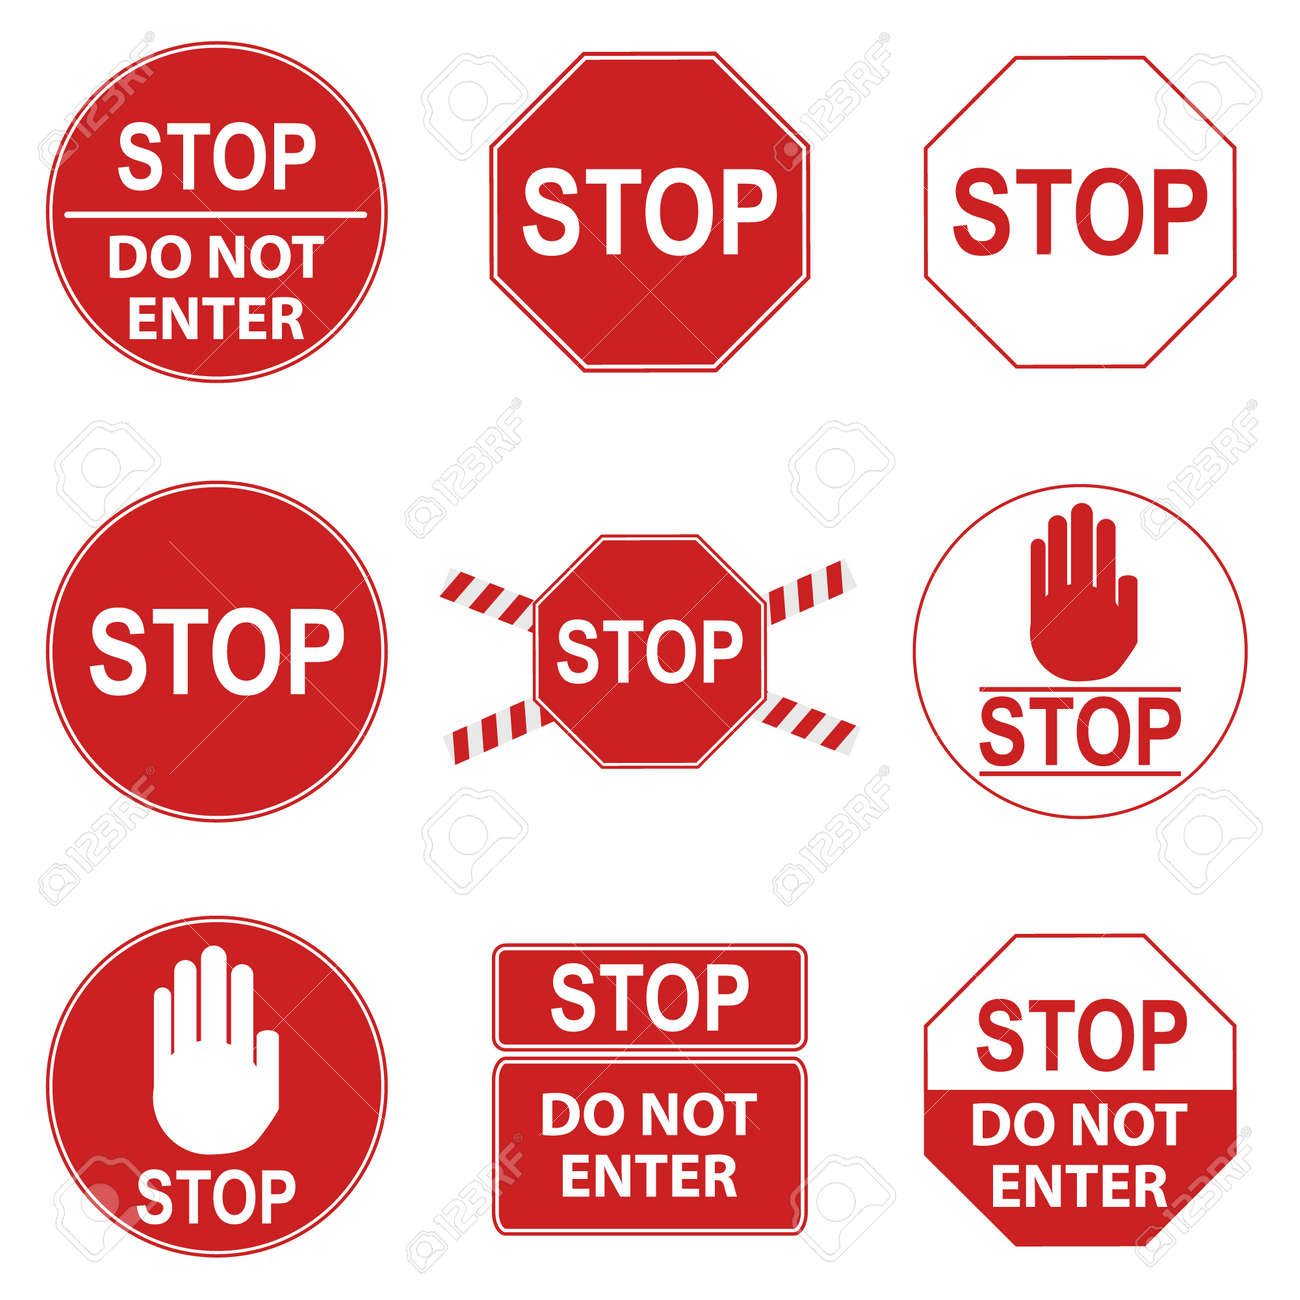 Stop sign, set of red prohibiting stop signs. Vector illustration. Vector. - 162890898